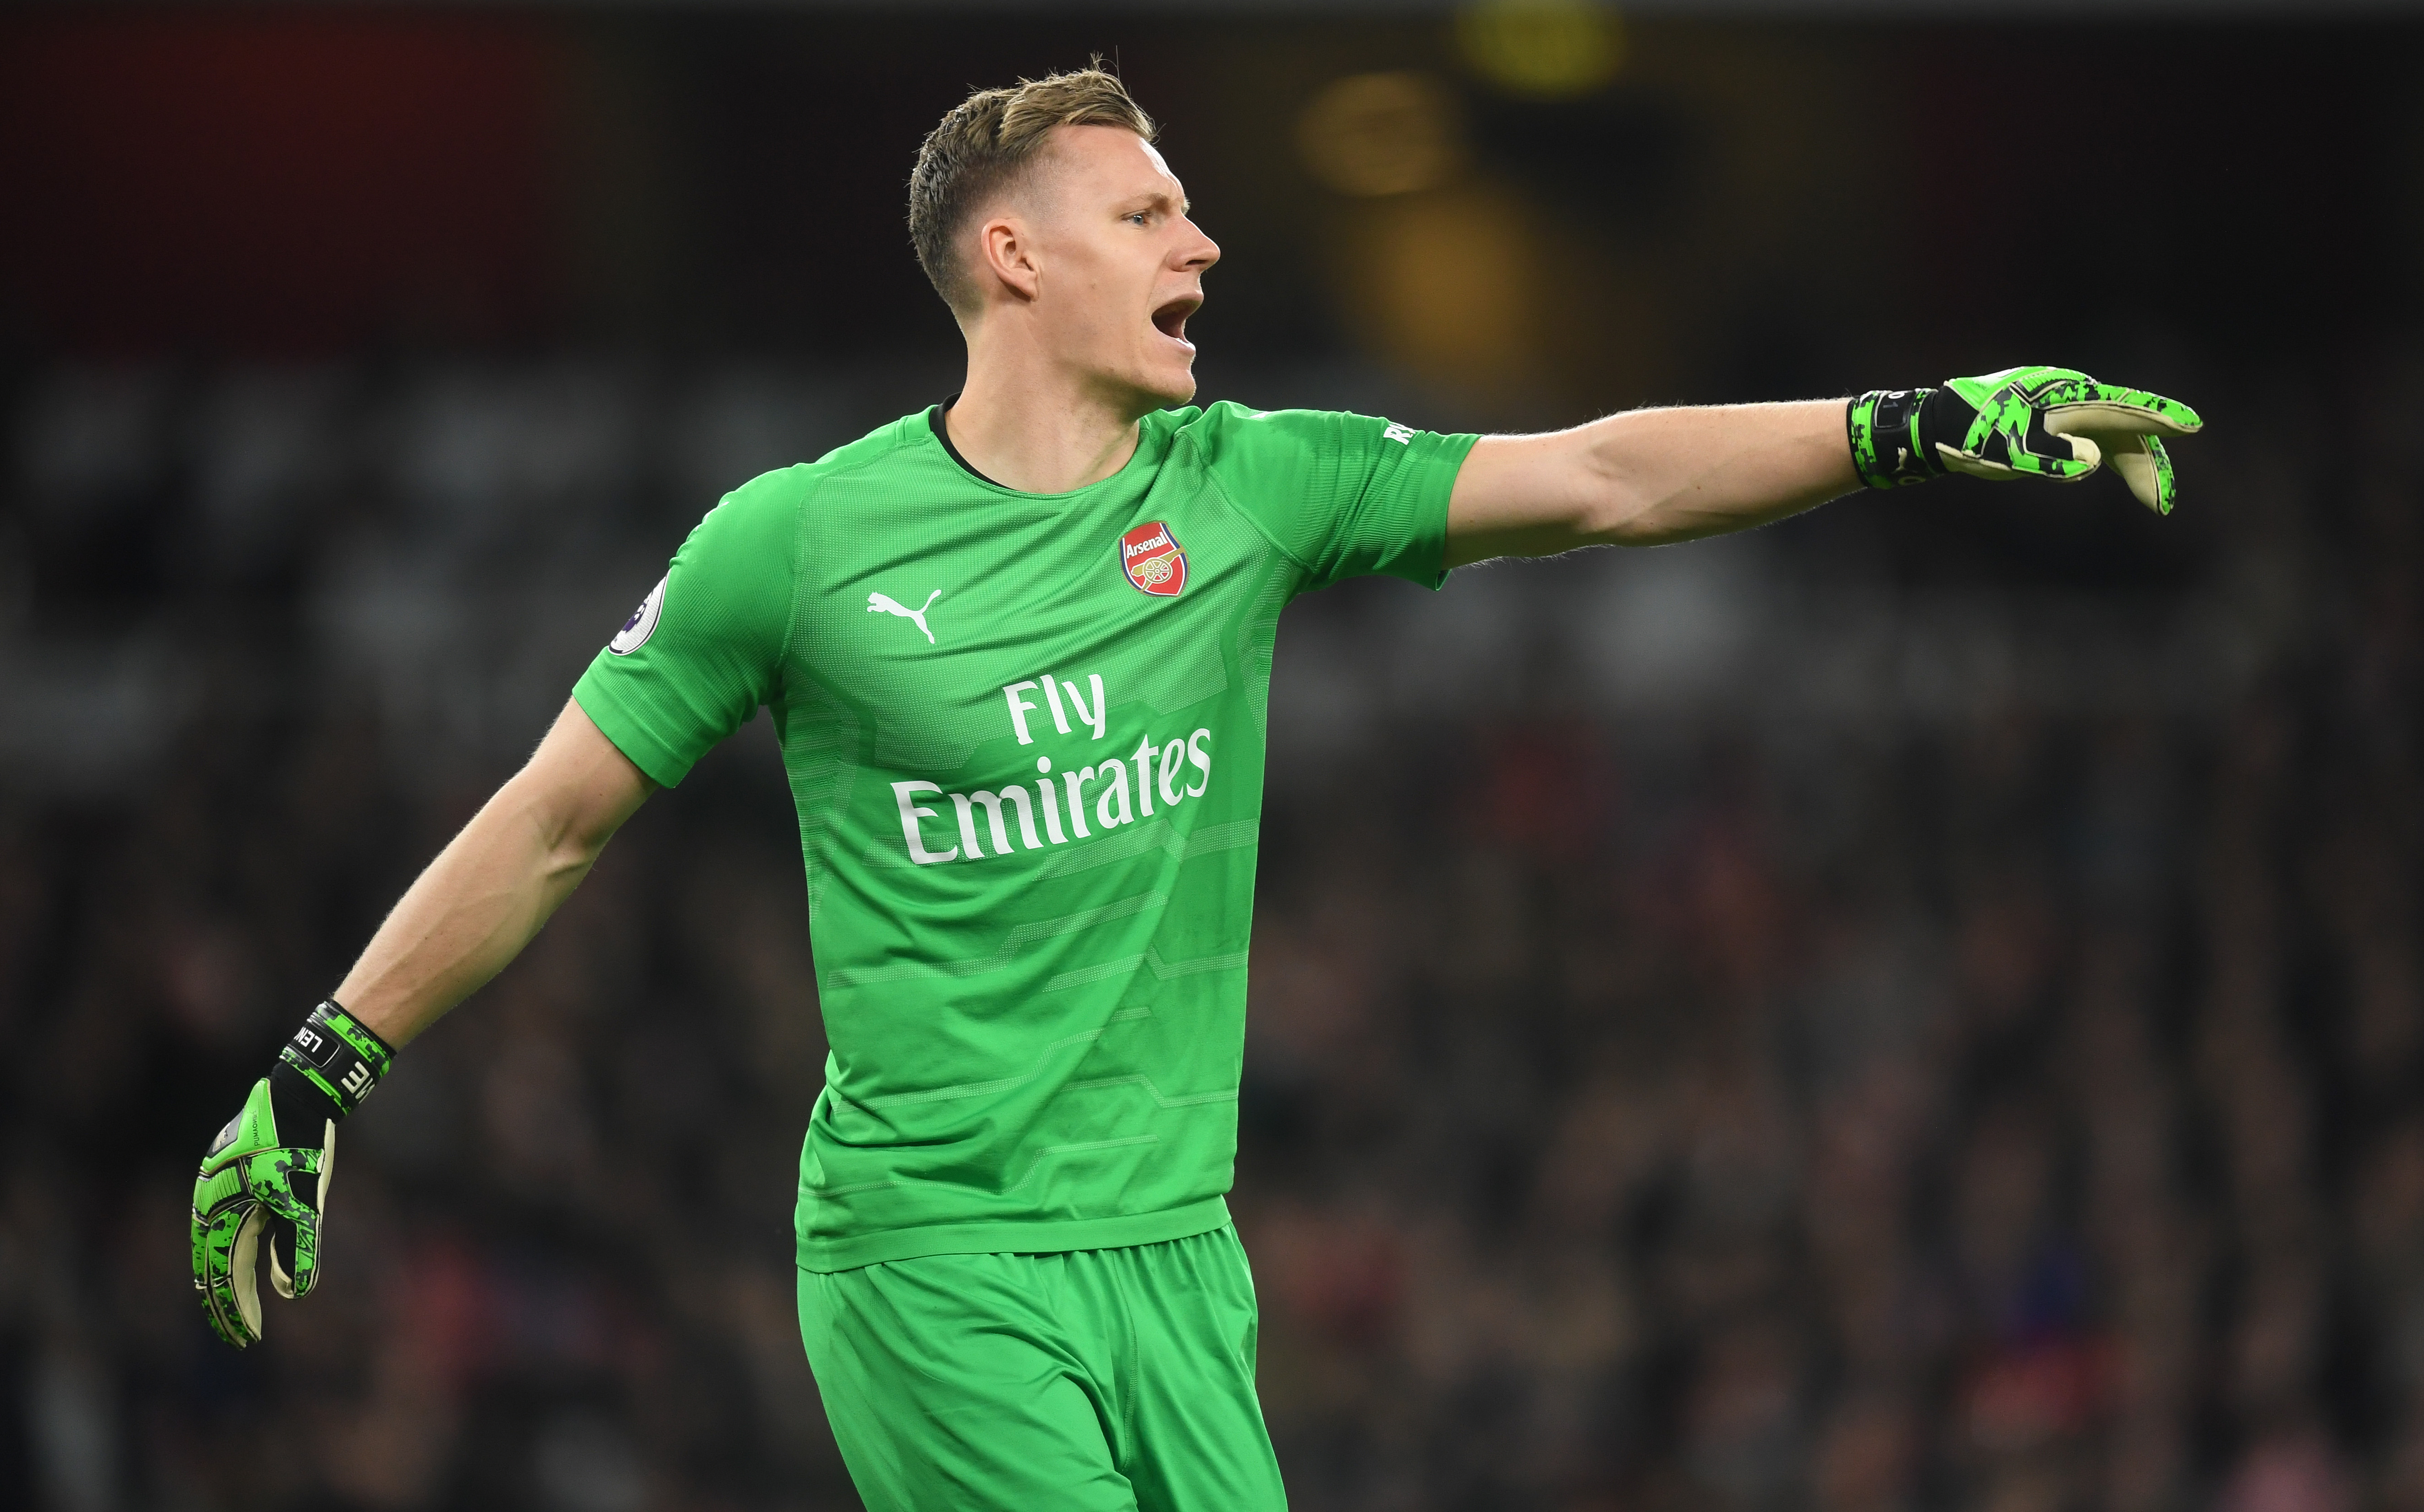 Players to star in 2019/20: Bernd Leno